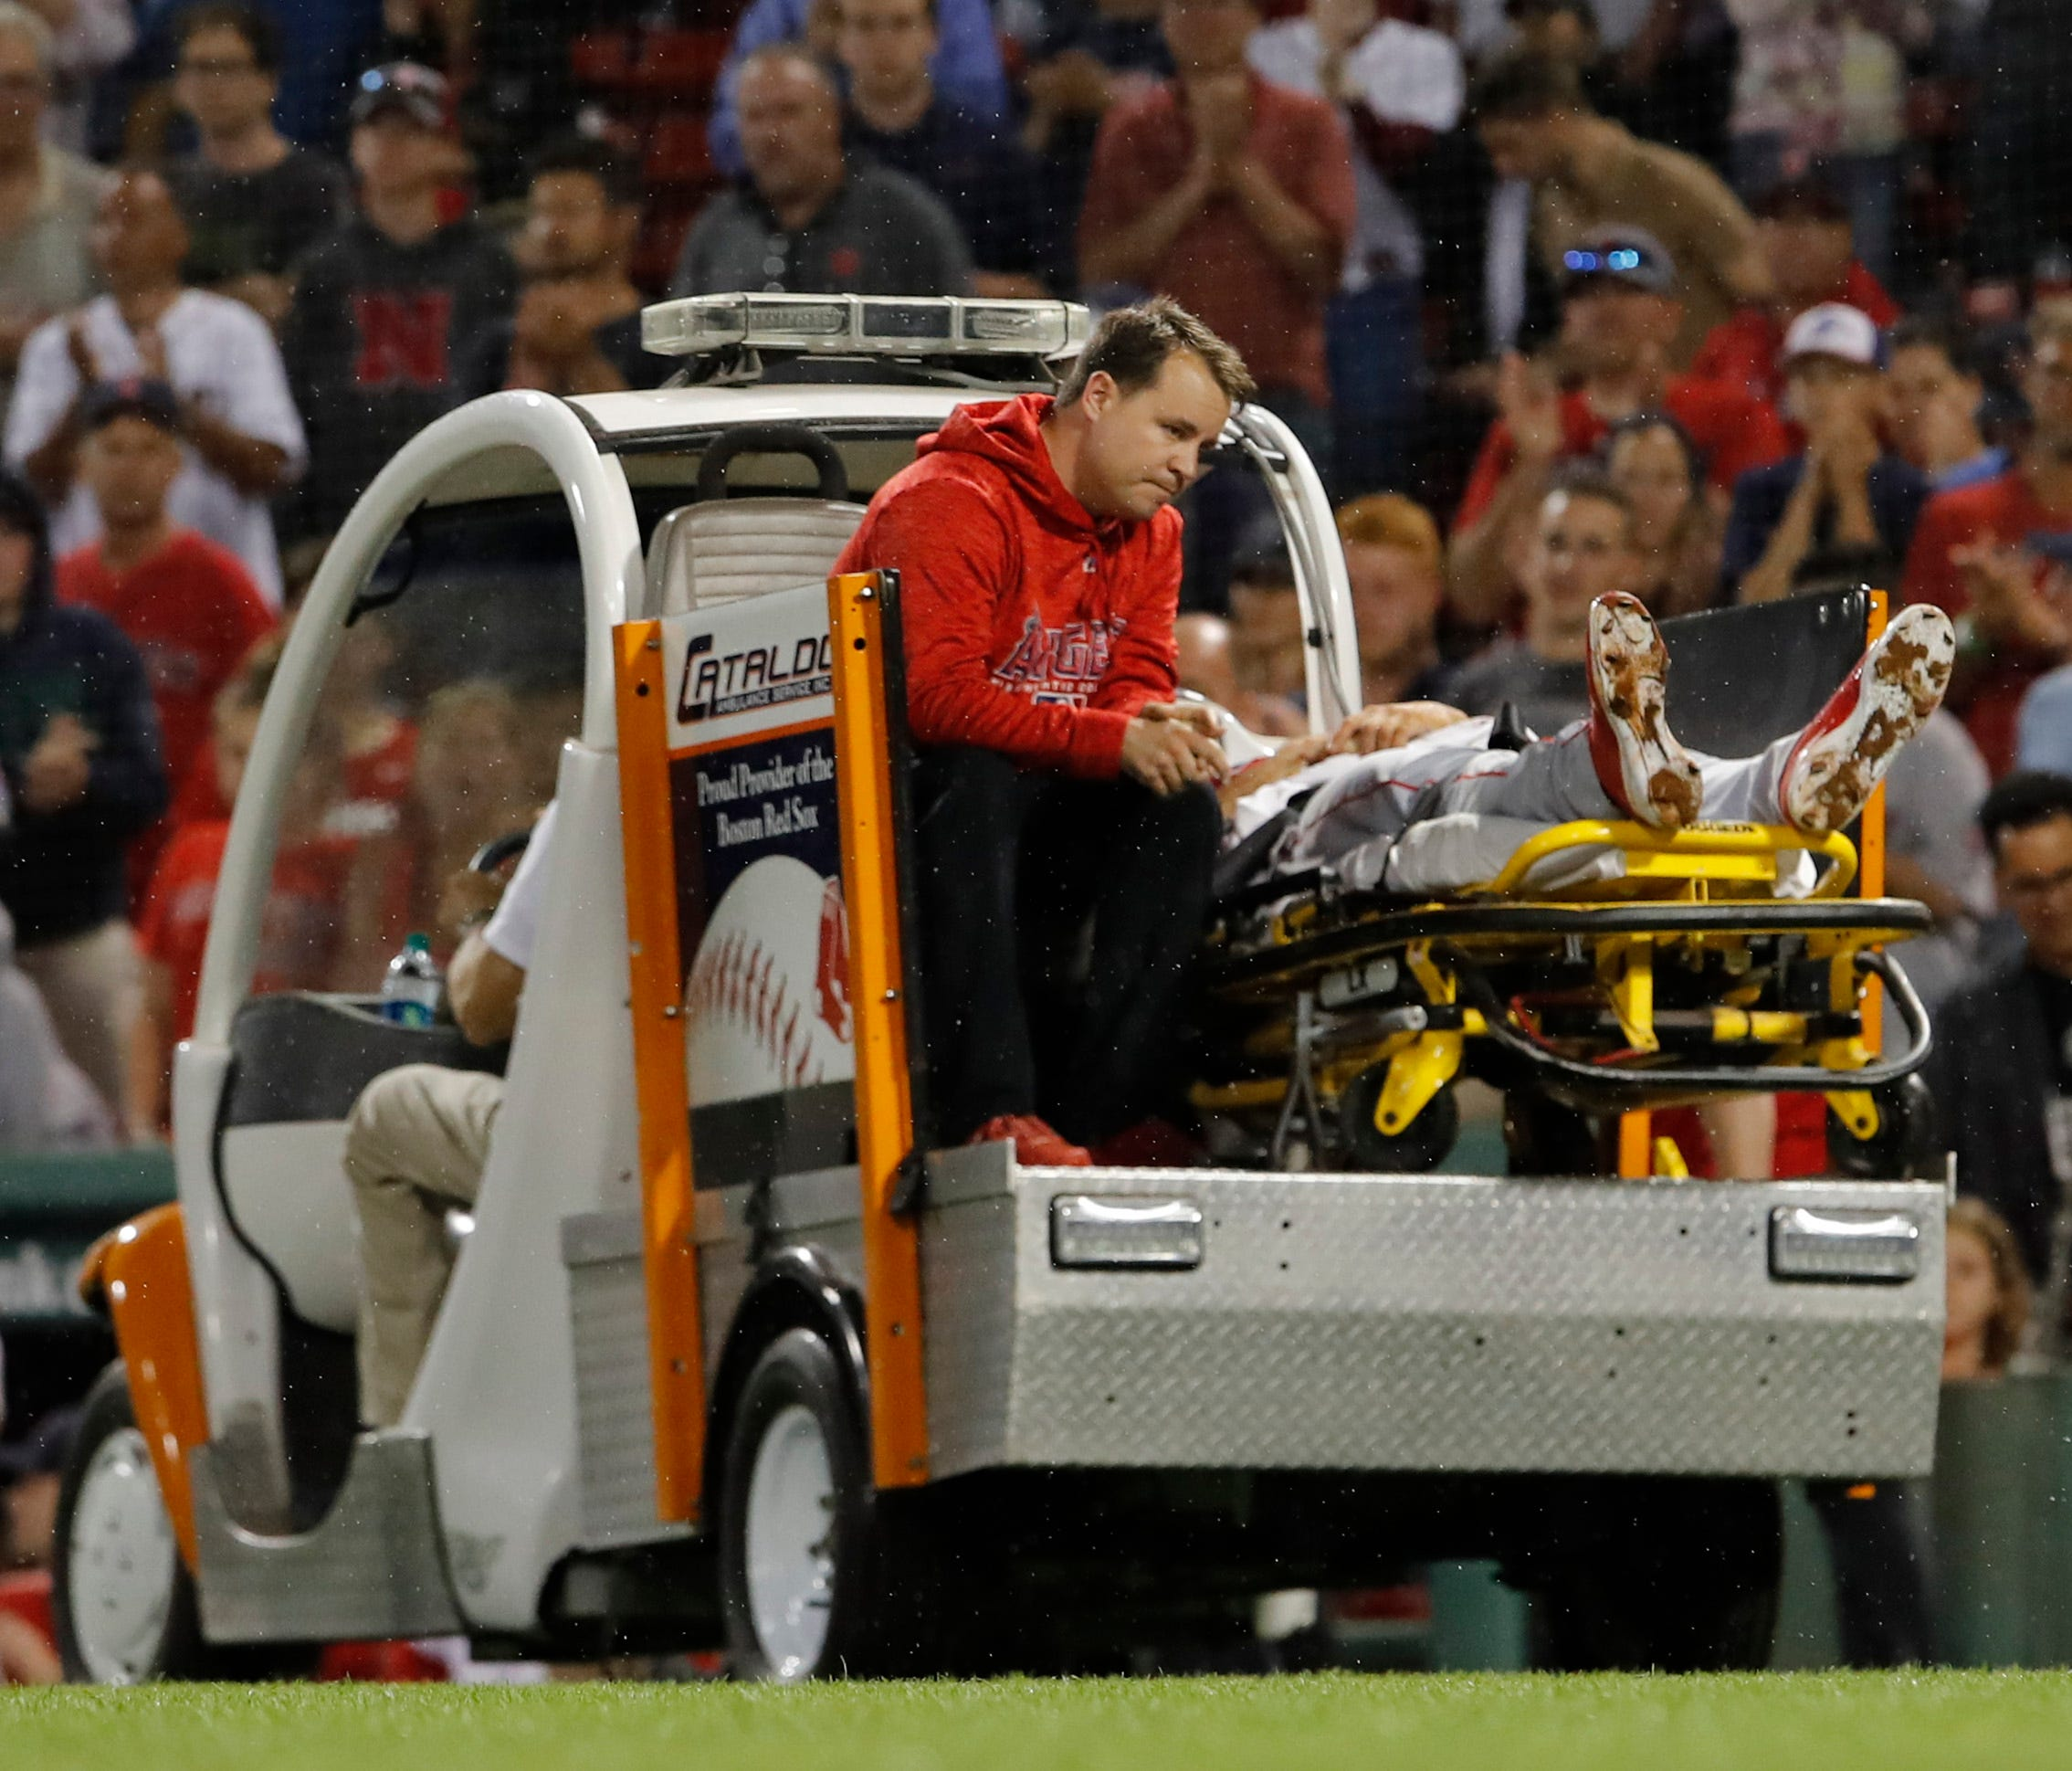 Angels pitcher Jake Jewell is taken off the field after being injured during a play at home plate.